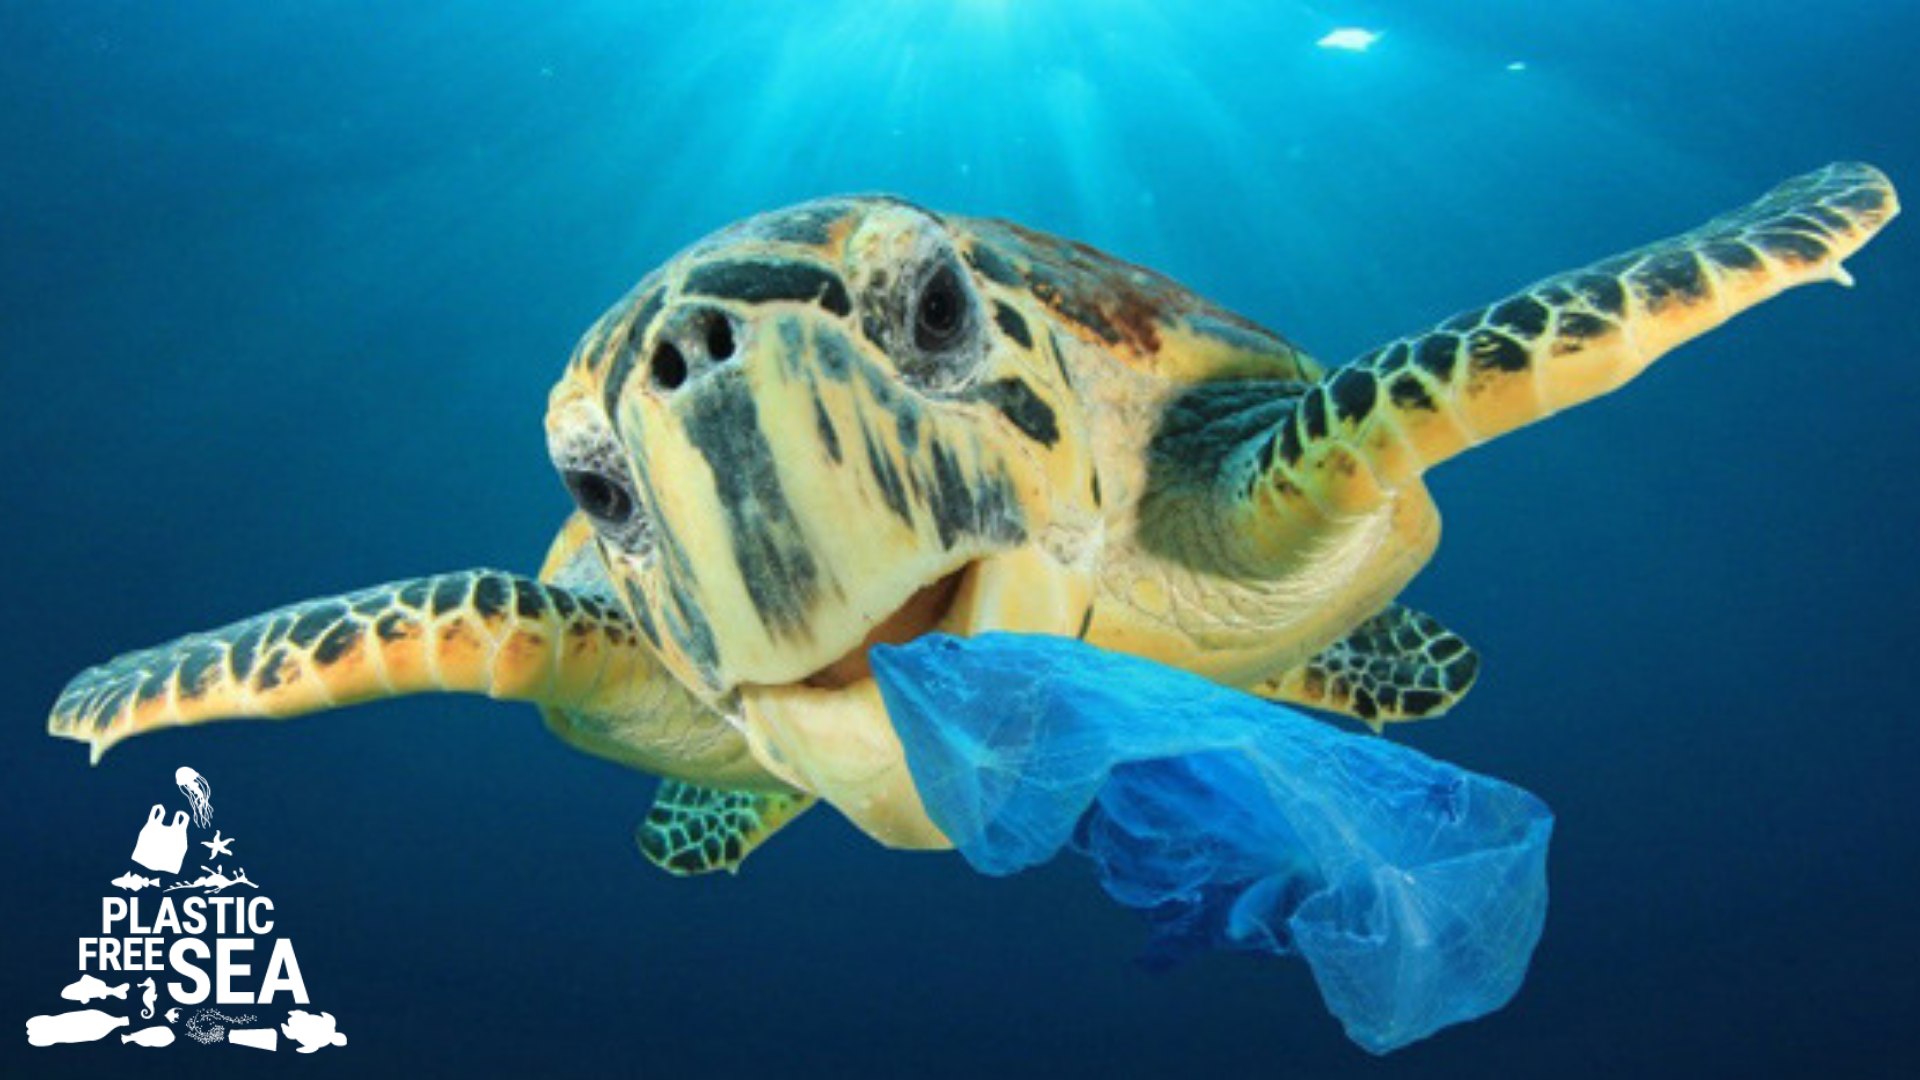 turn the plastic tide: Greens call for end to single-use plastics